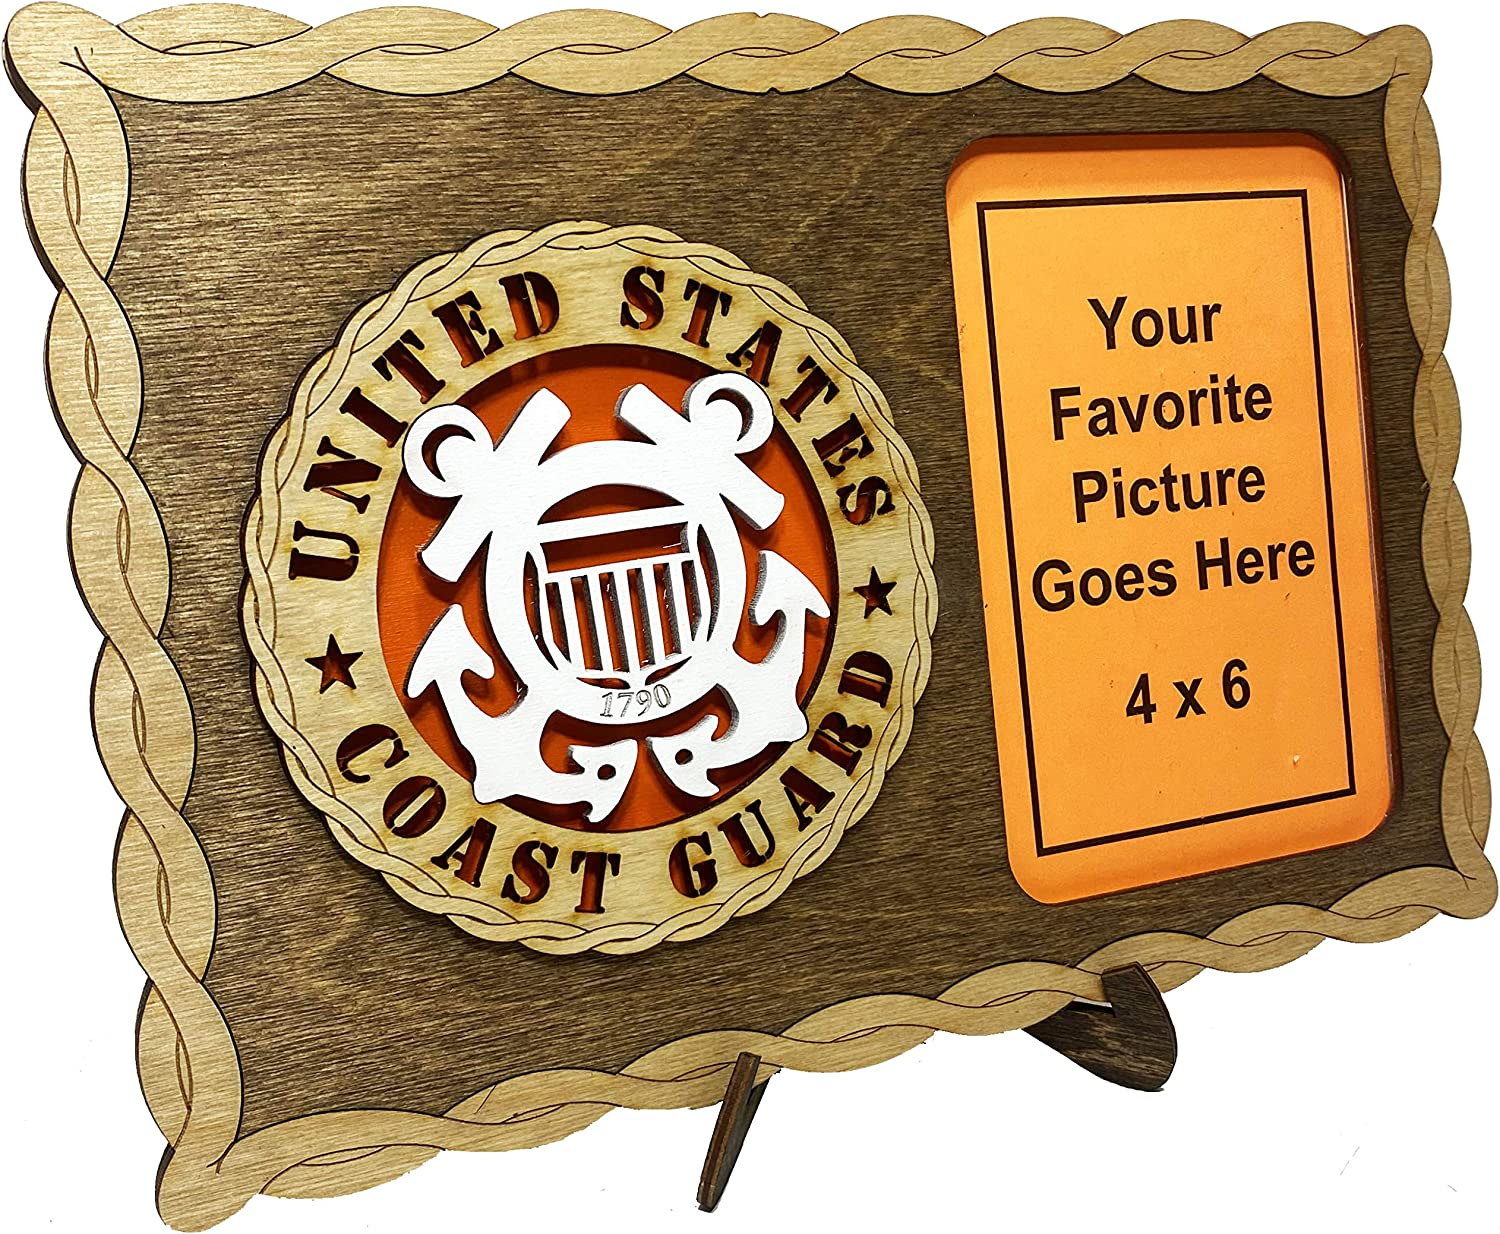 Armed Forces Coast Guard Custom Laser Crafted Three Dimensional Wooden Military Picture Frame